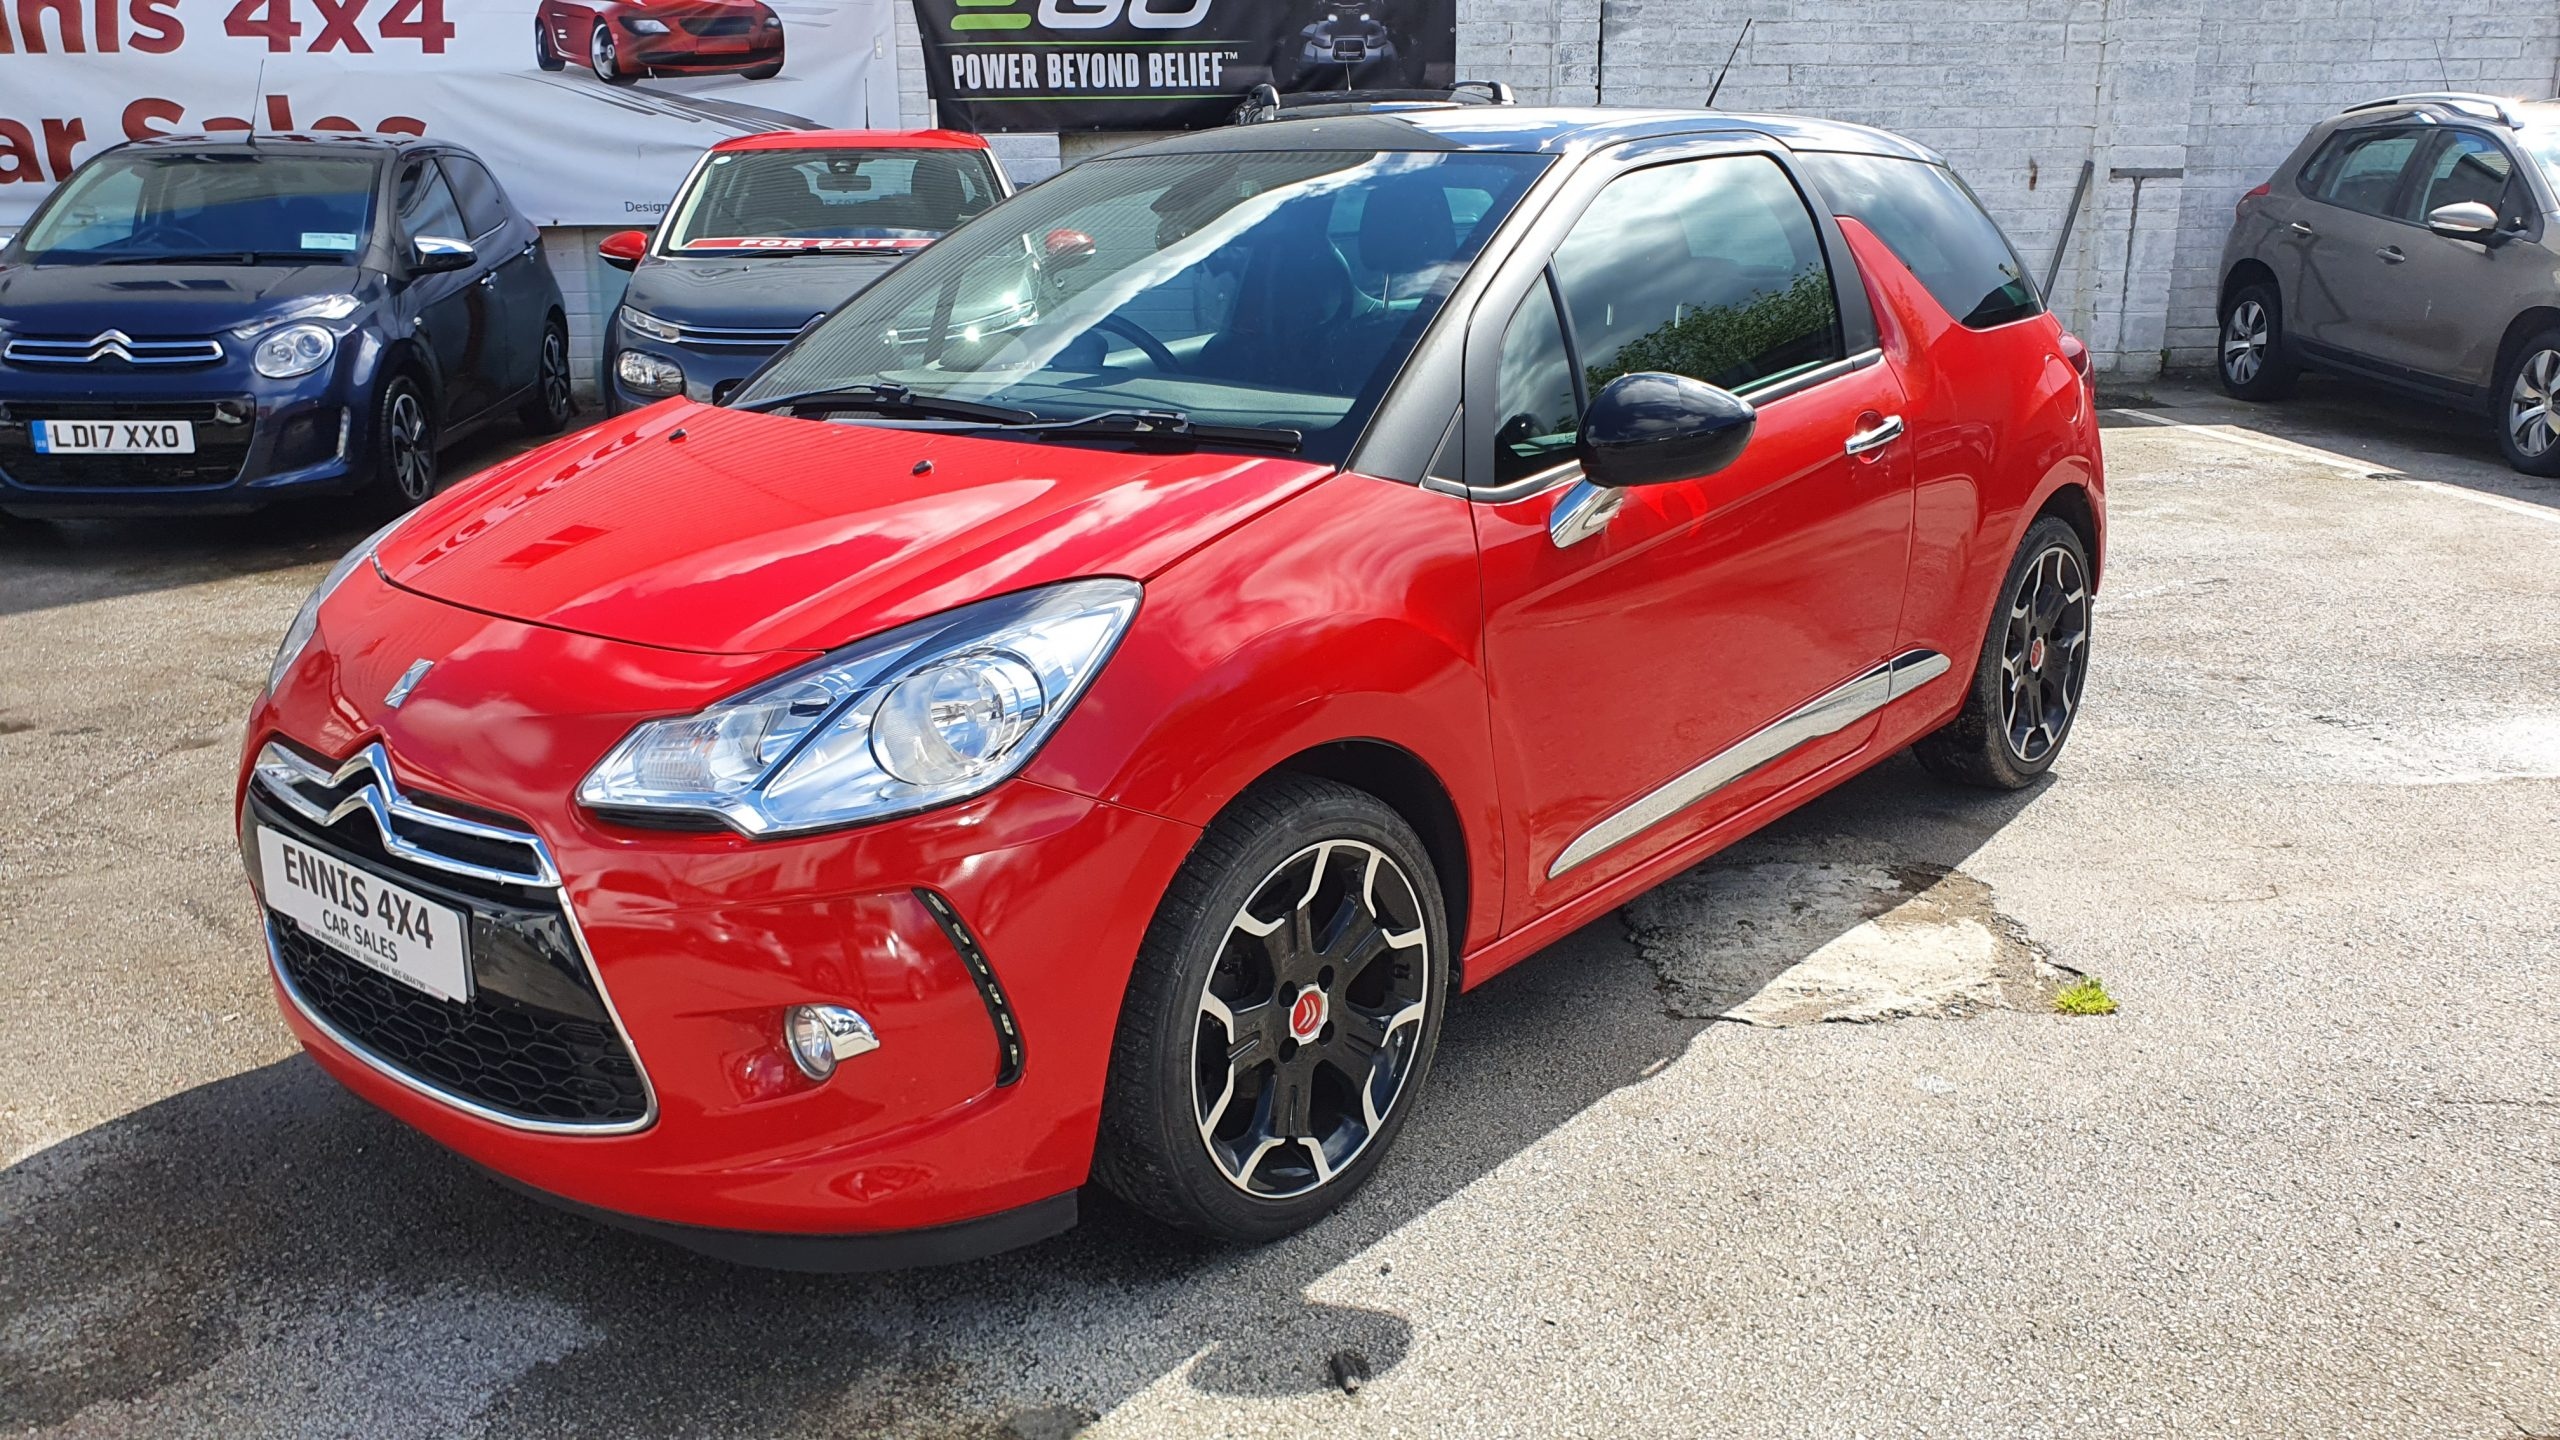 Citroen ds3 D style +HDI 1.6 2013 Image